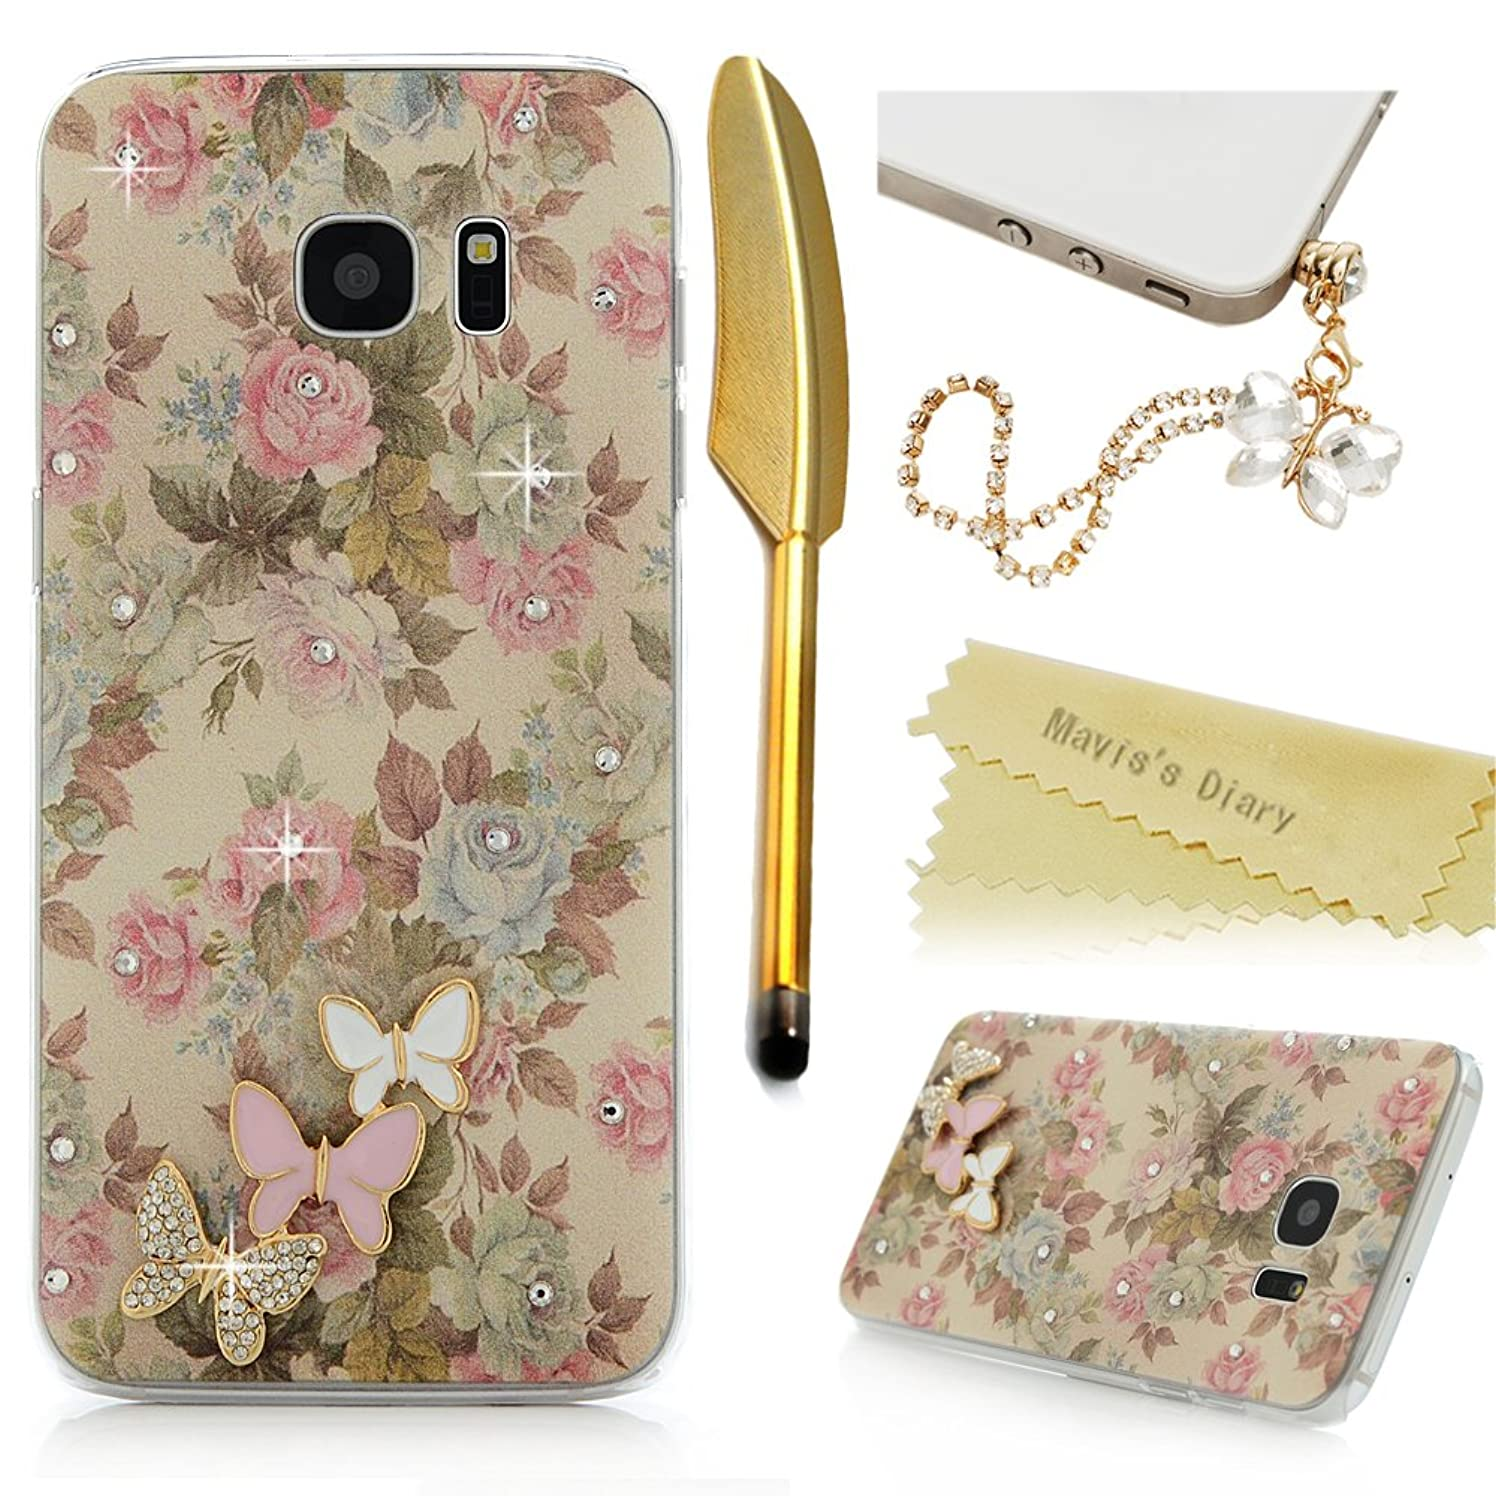 Galaxy S7 Edge Case (Not for S7)- Mavis's Diary 3D Handmade Bling Crystal Lovely Butterflies Shiny Diamonds Fashion Floral Pattern Clear Hard Cover for Samsung Galaxy S7 Edge & Cute Dust Plug & Stylus